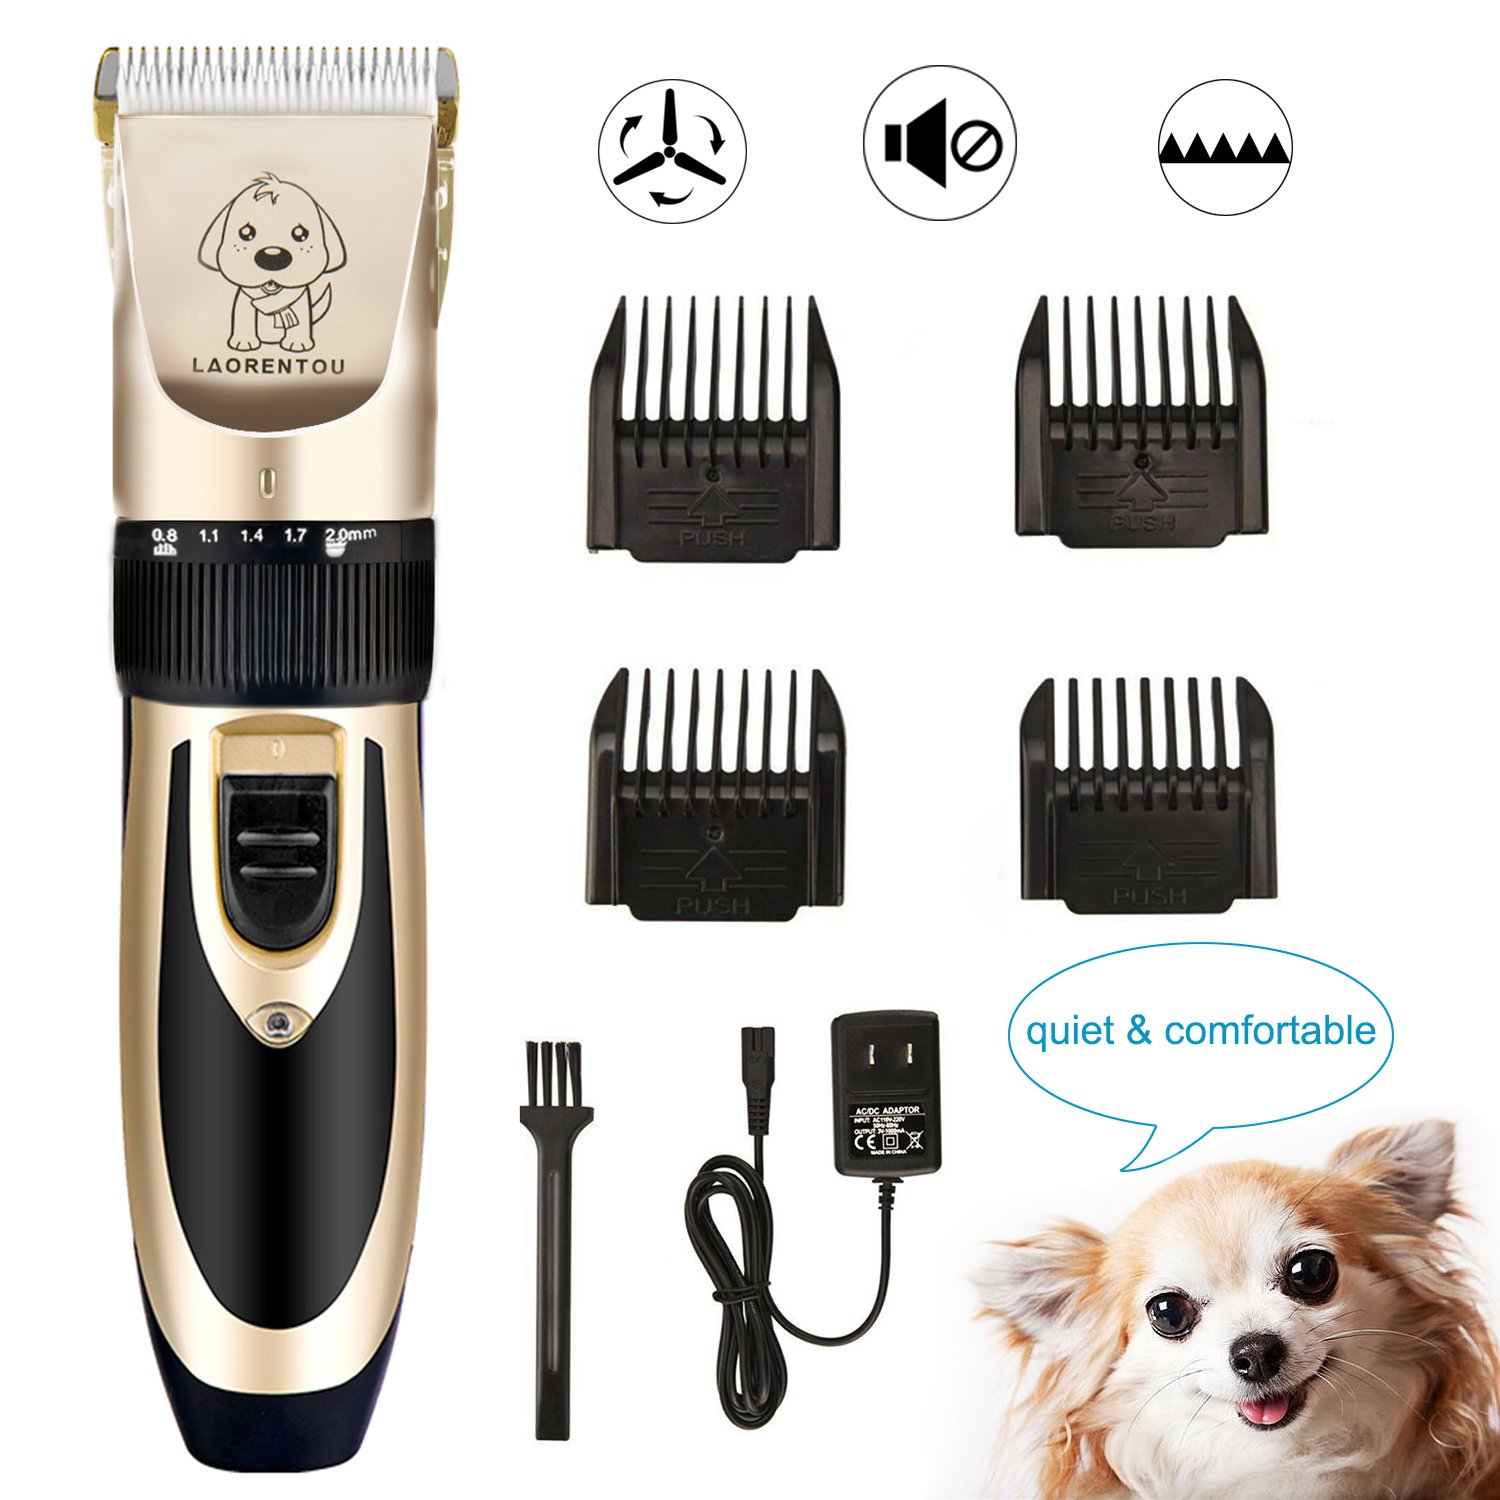 GuTe Dog Clippers,Low virbation and Noise Rechargeable&Cordeless Pet Grooming Kit Hair Trimmer for Coton de Tulear,Labrador, Cavalier, Shih Tzu, Spaniel, Maltese Dogs